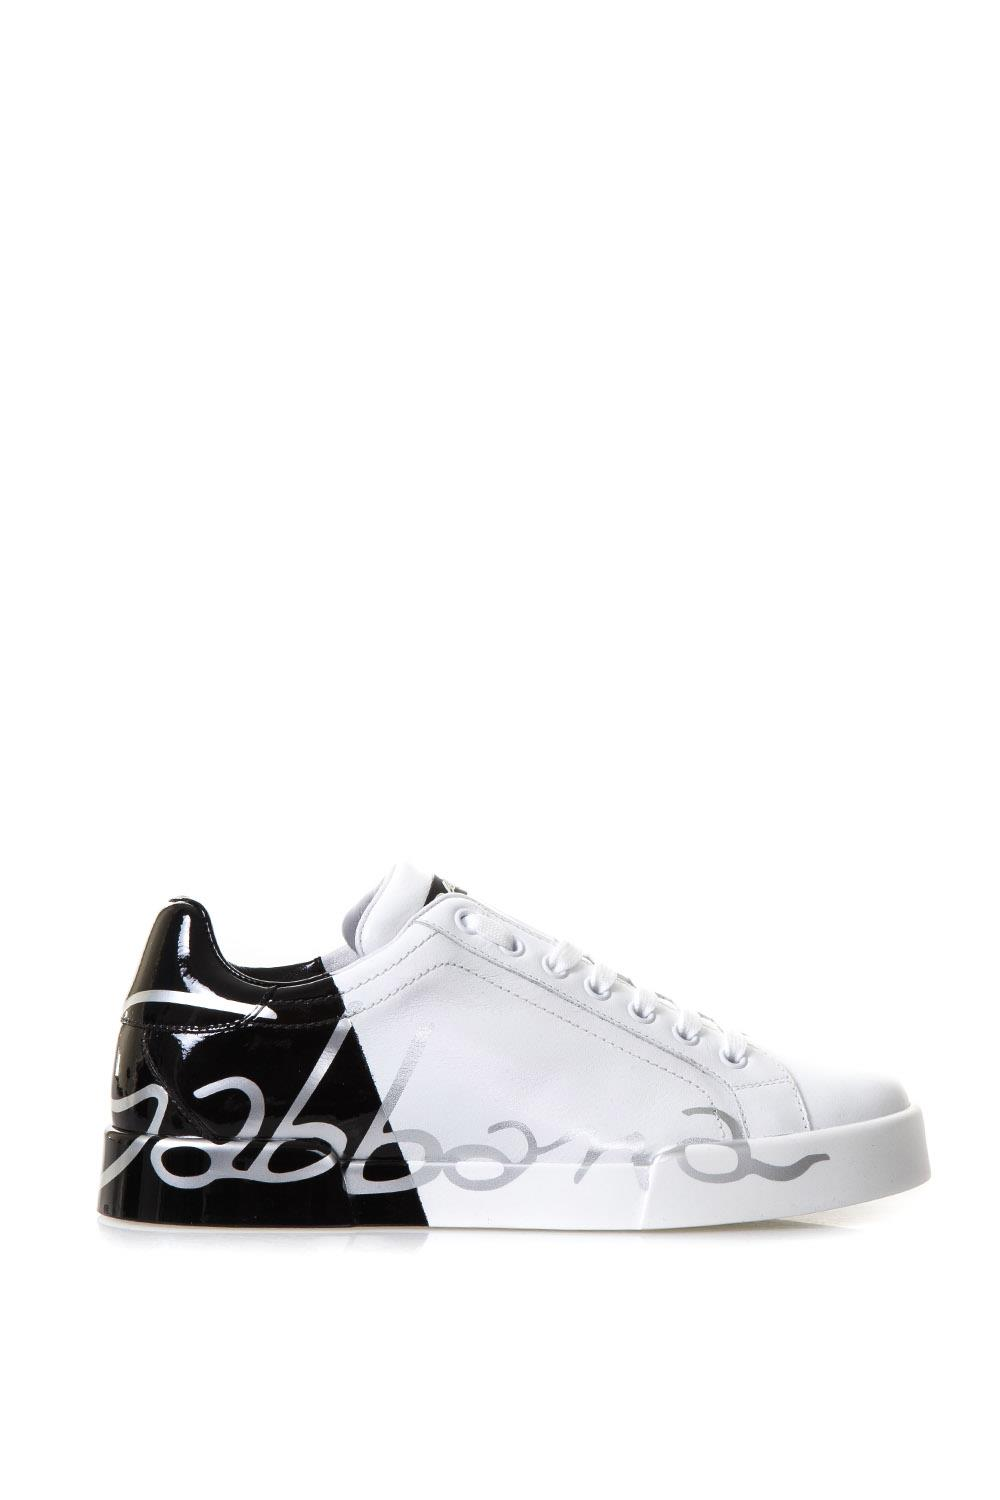 e7337cfe5be6 WHITE   BLACK LEATHER LOGO SNEAKERS FW 2018 - DOLCE   GABBANA - Boutique  Galiano